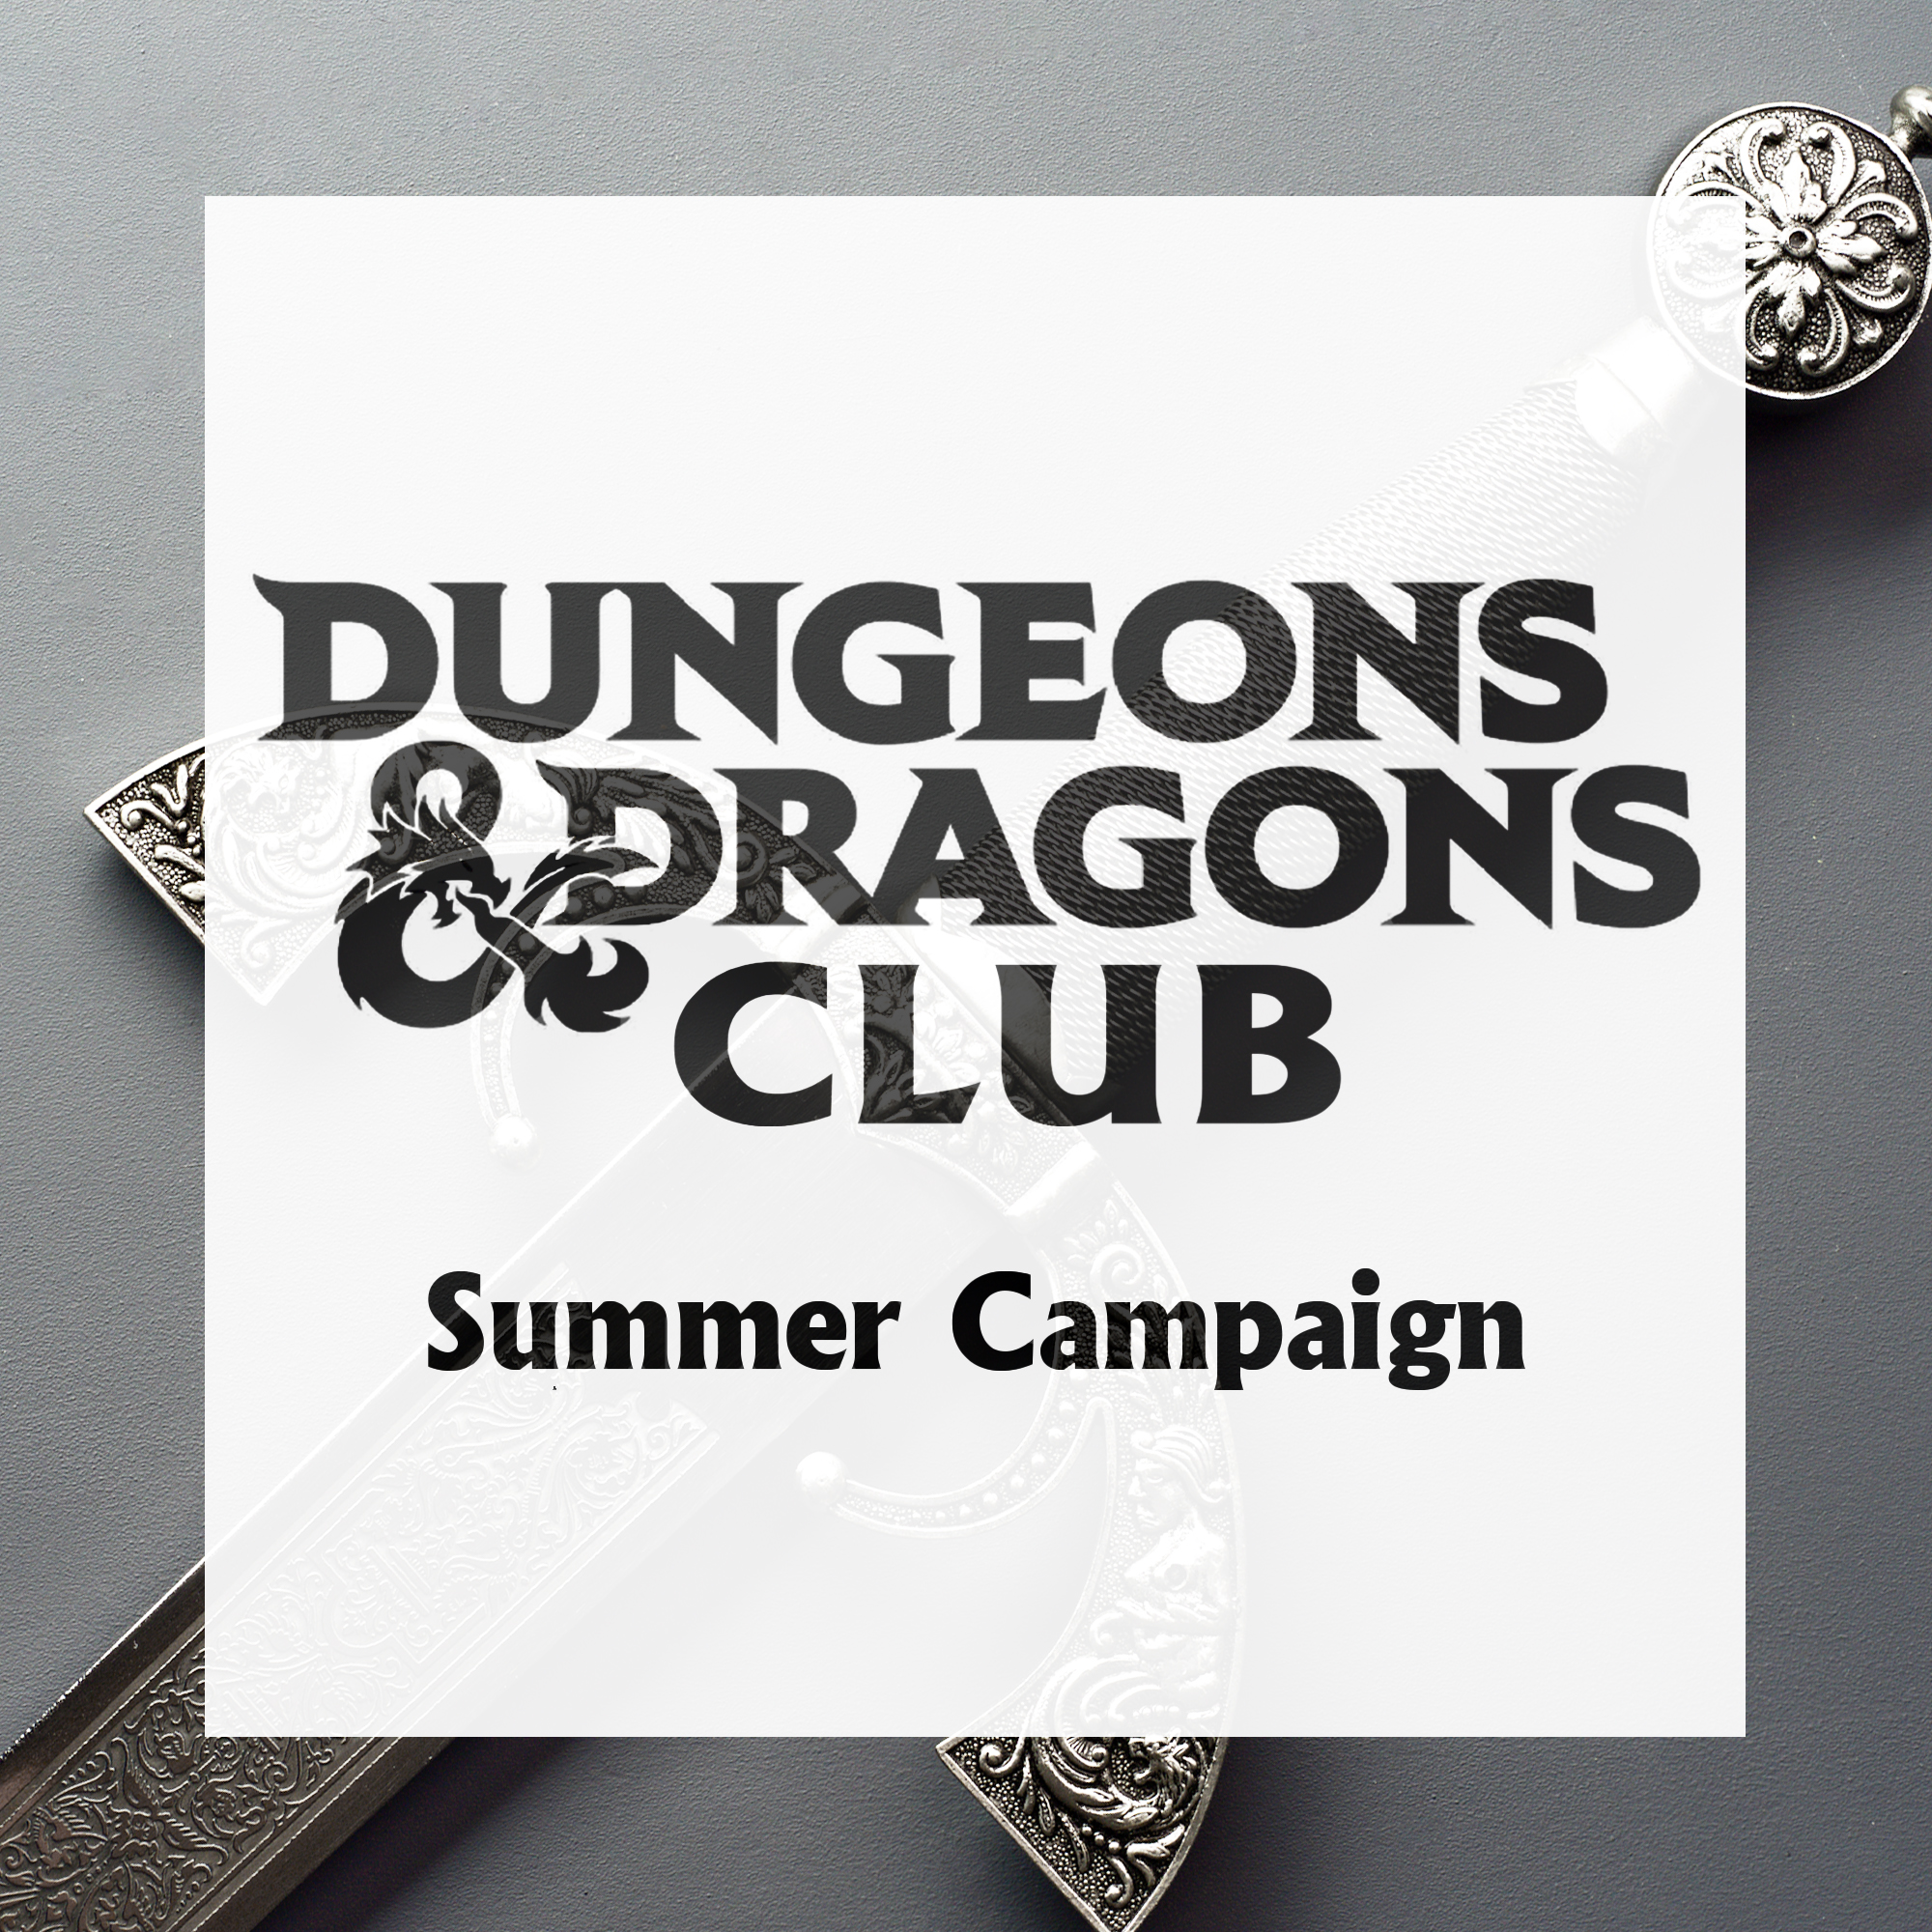 Dungeons & Dragons Club: Summer Campaign